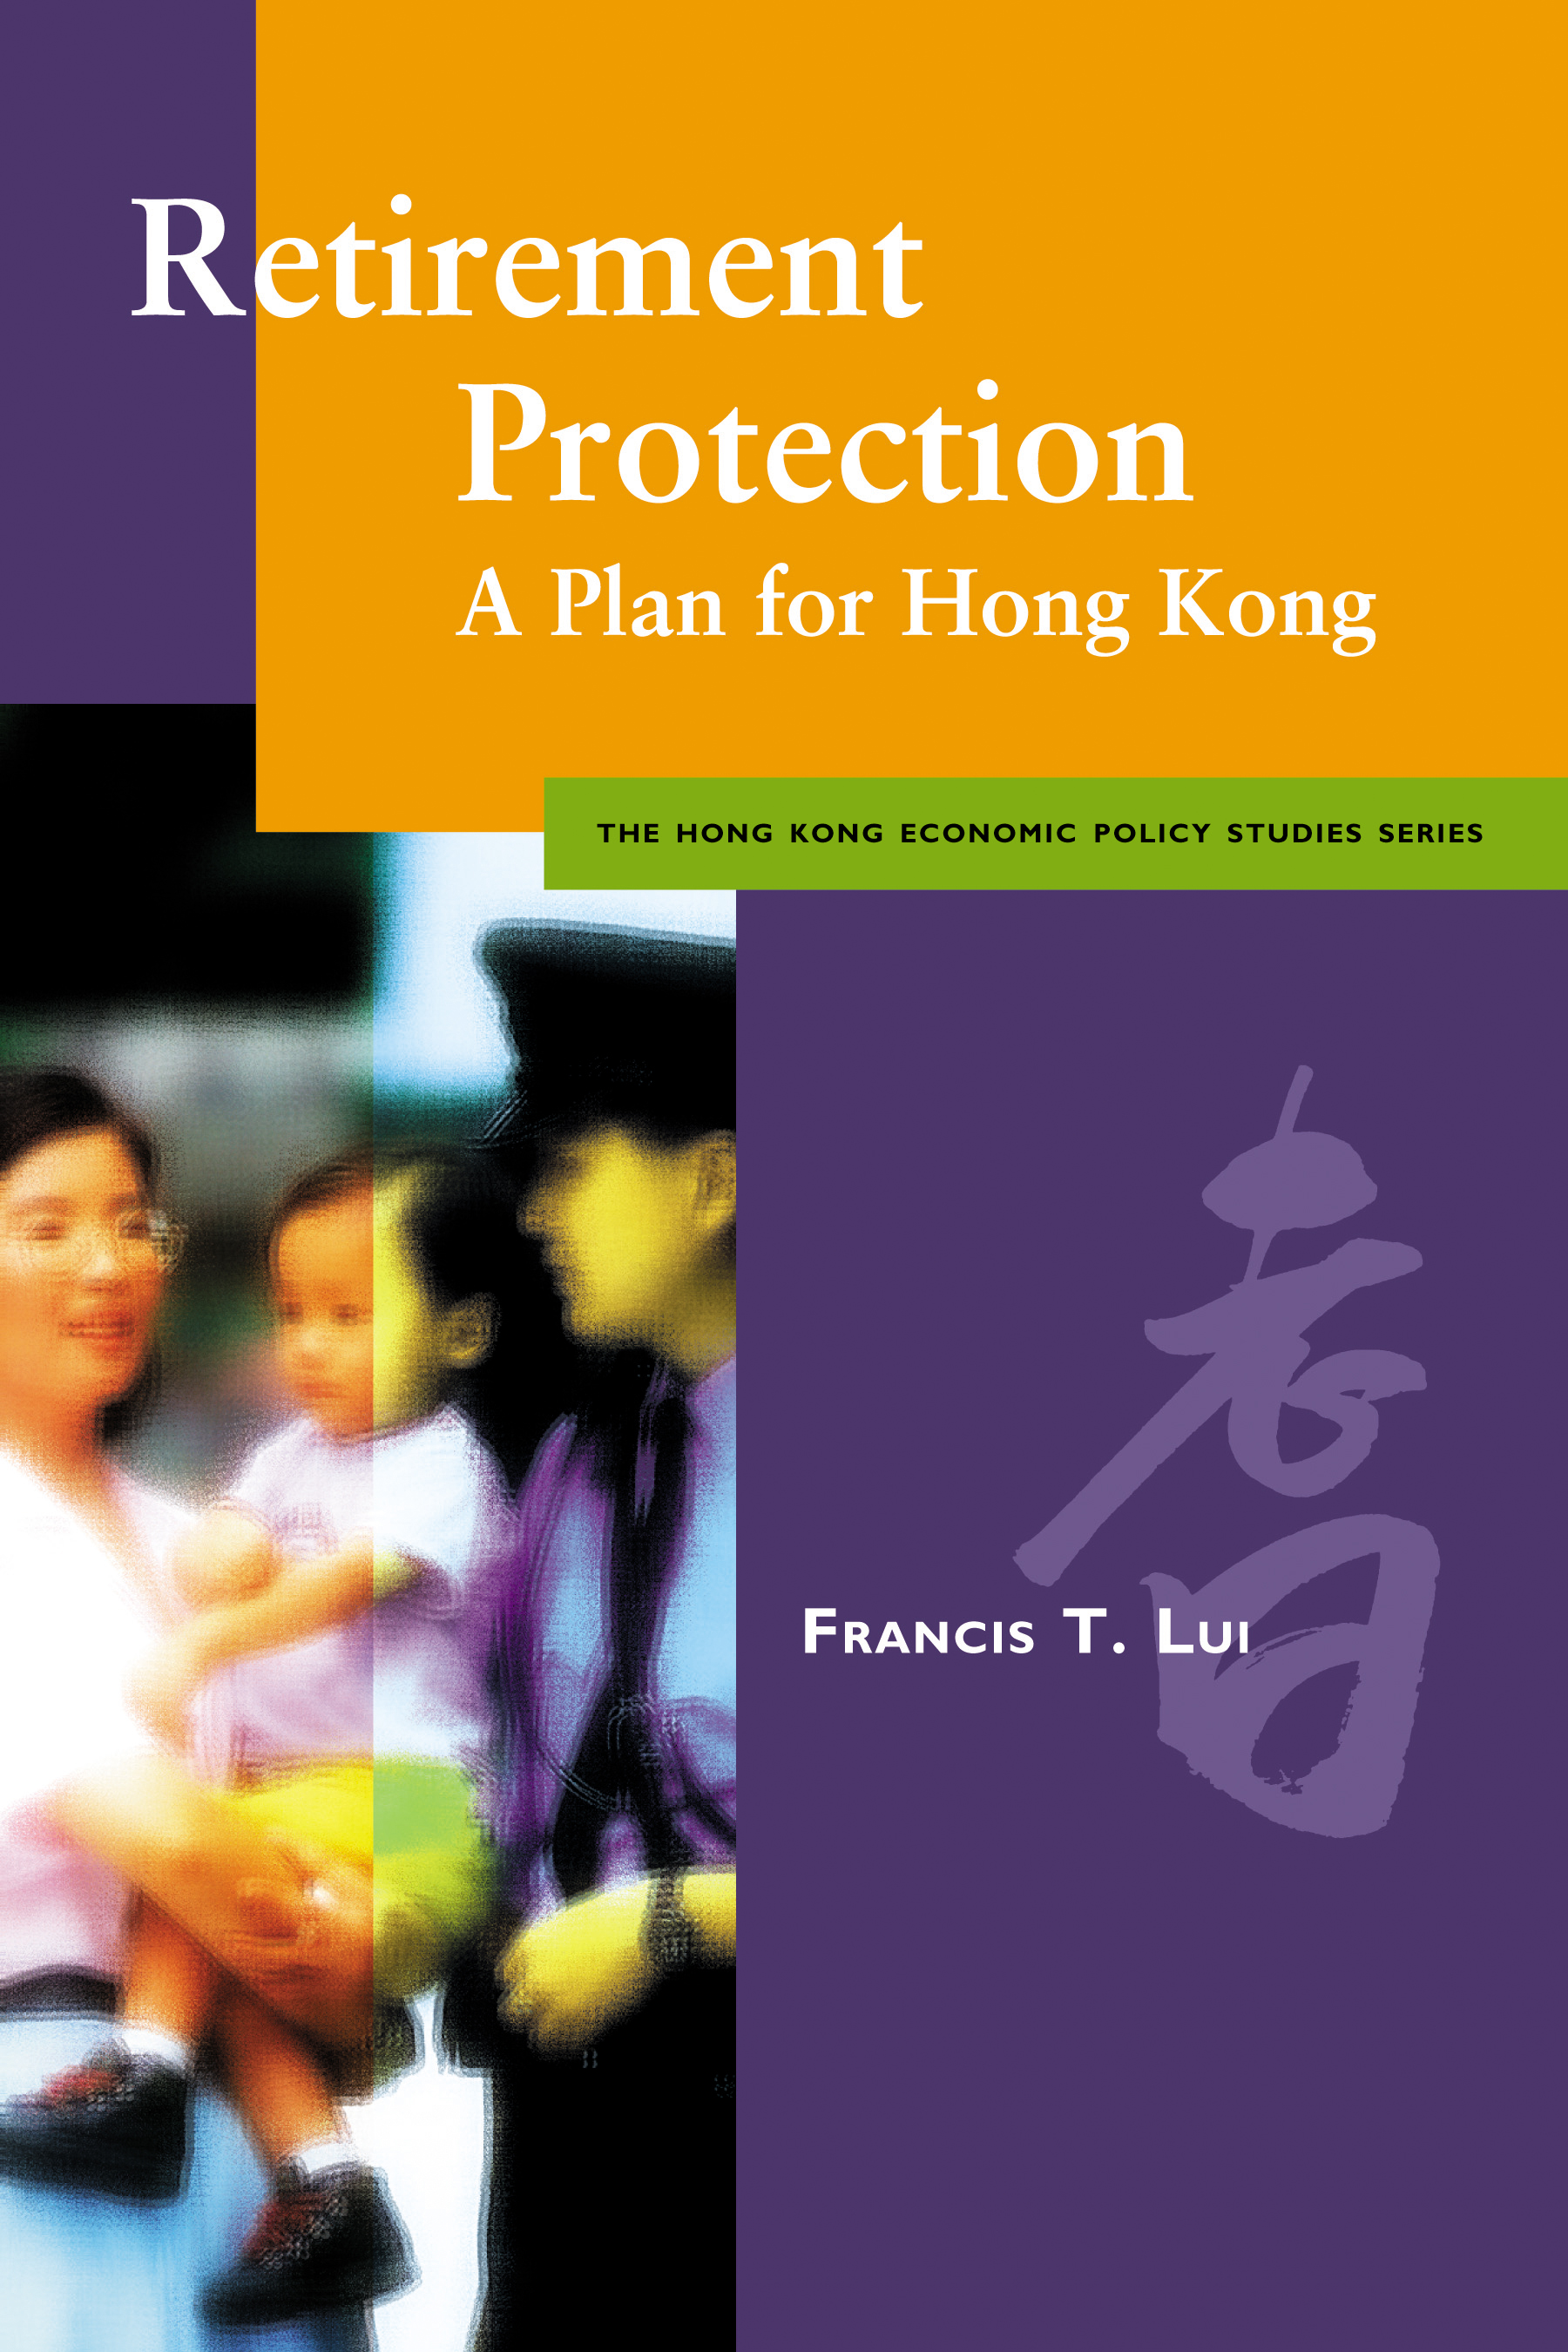 Retirement Protection: A Plan for Hong Kong